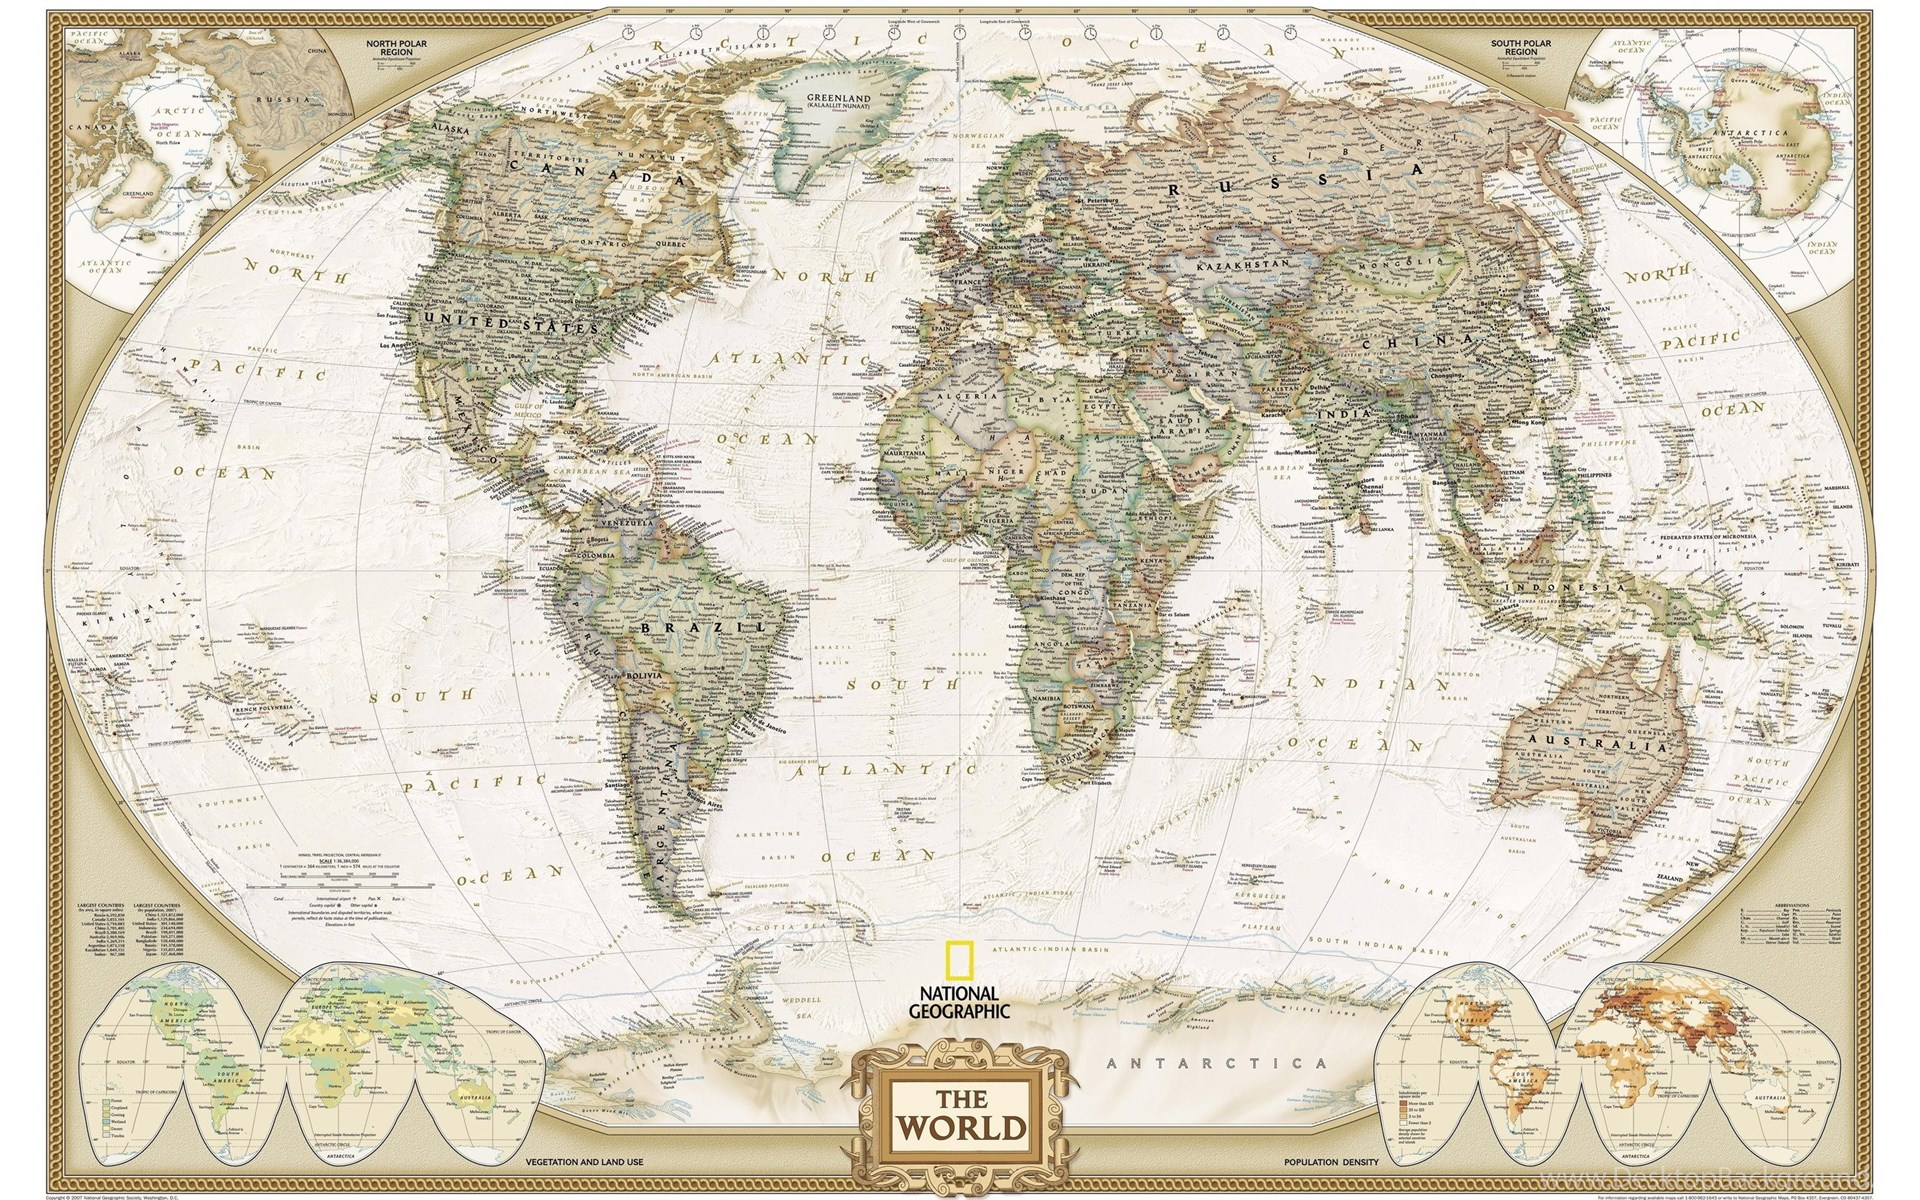 National geographic world map wallpapers 1103450 desktop background widescreen gumiabroncs Choice Image